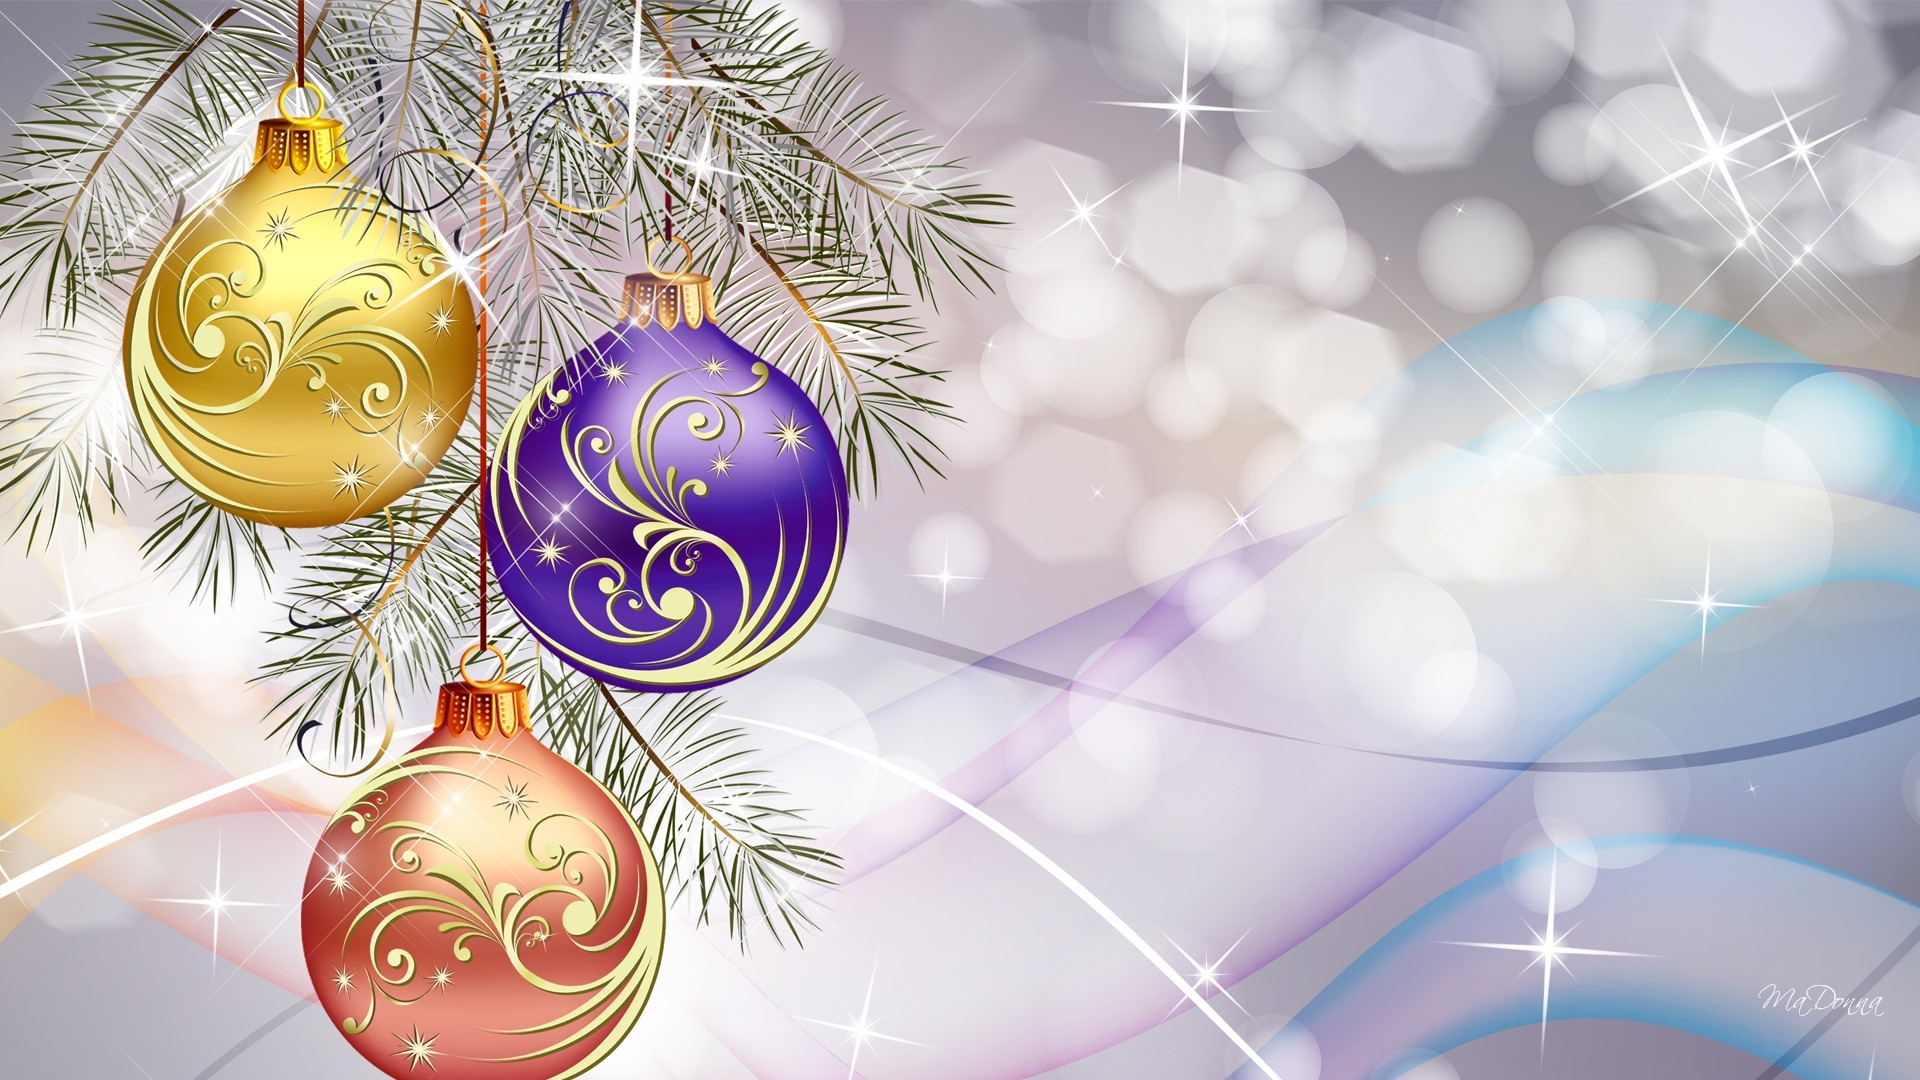 Merry Christmas Wallpaper (78+ Images